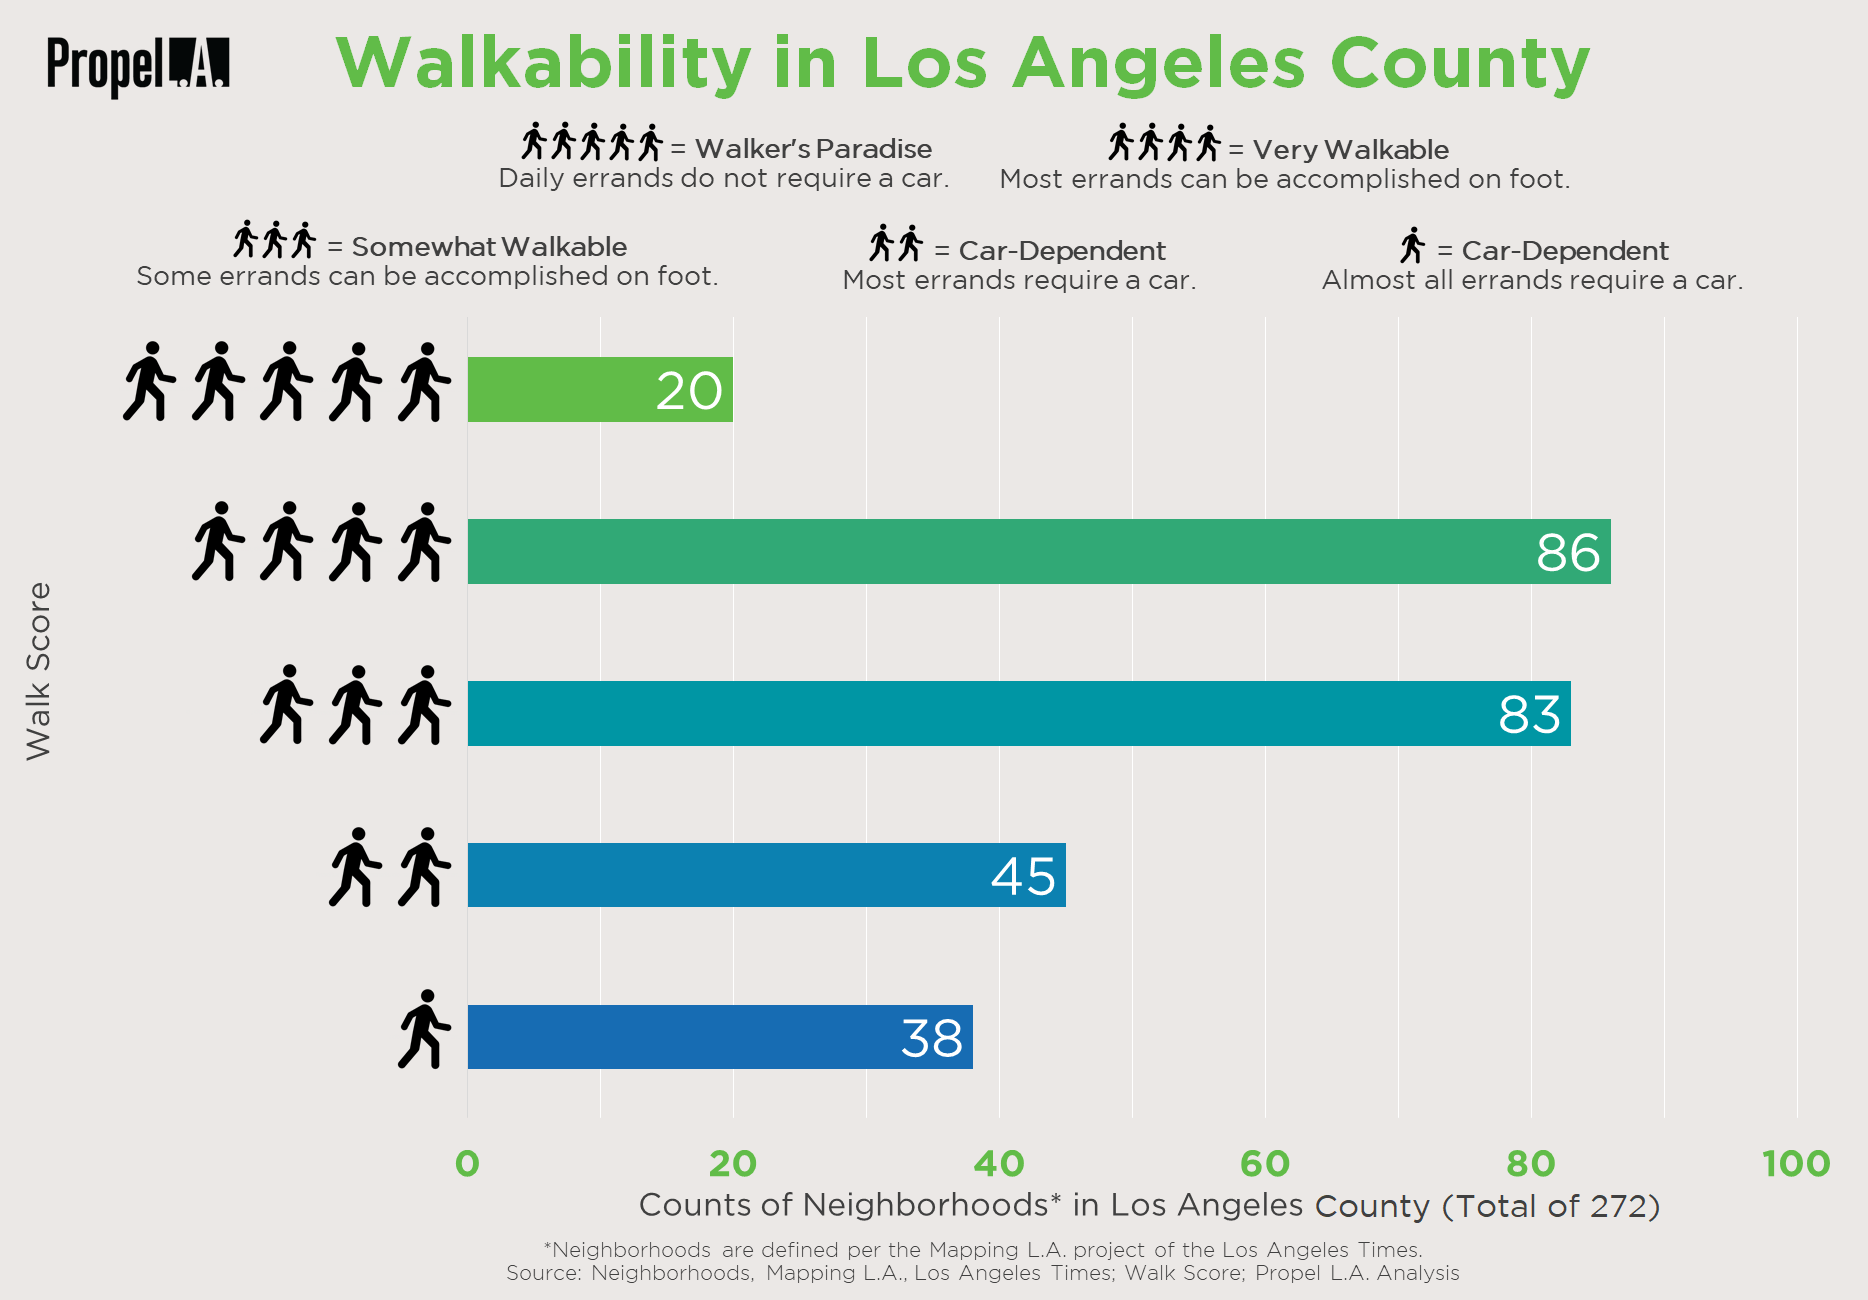 Walkability in Los Angeles County